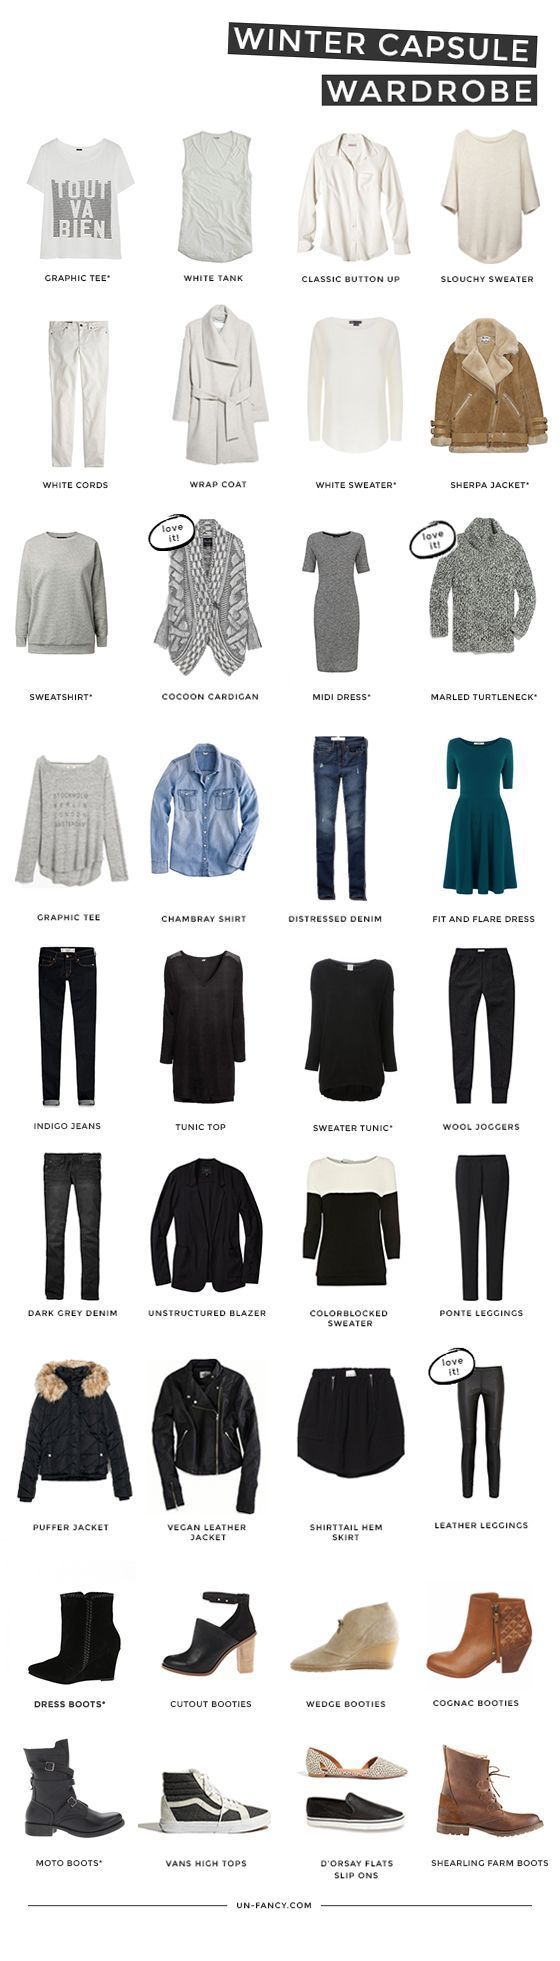 Put on your cozy socks and let's get excited about winter! Pssst … here's a refresher course on capsule wardrobes, just in case you want to brush up. And here's a quick update about my goals + thou...